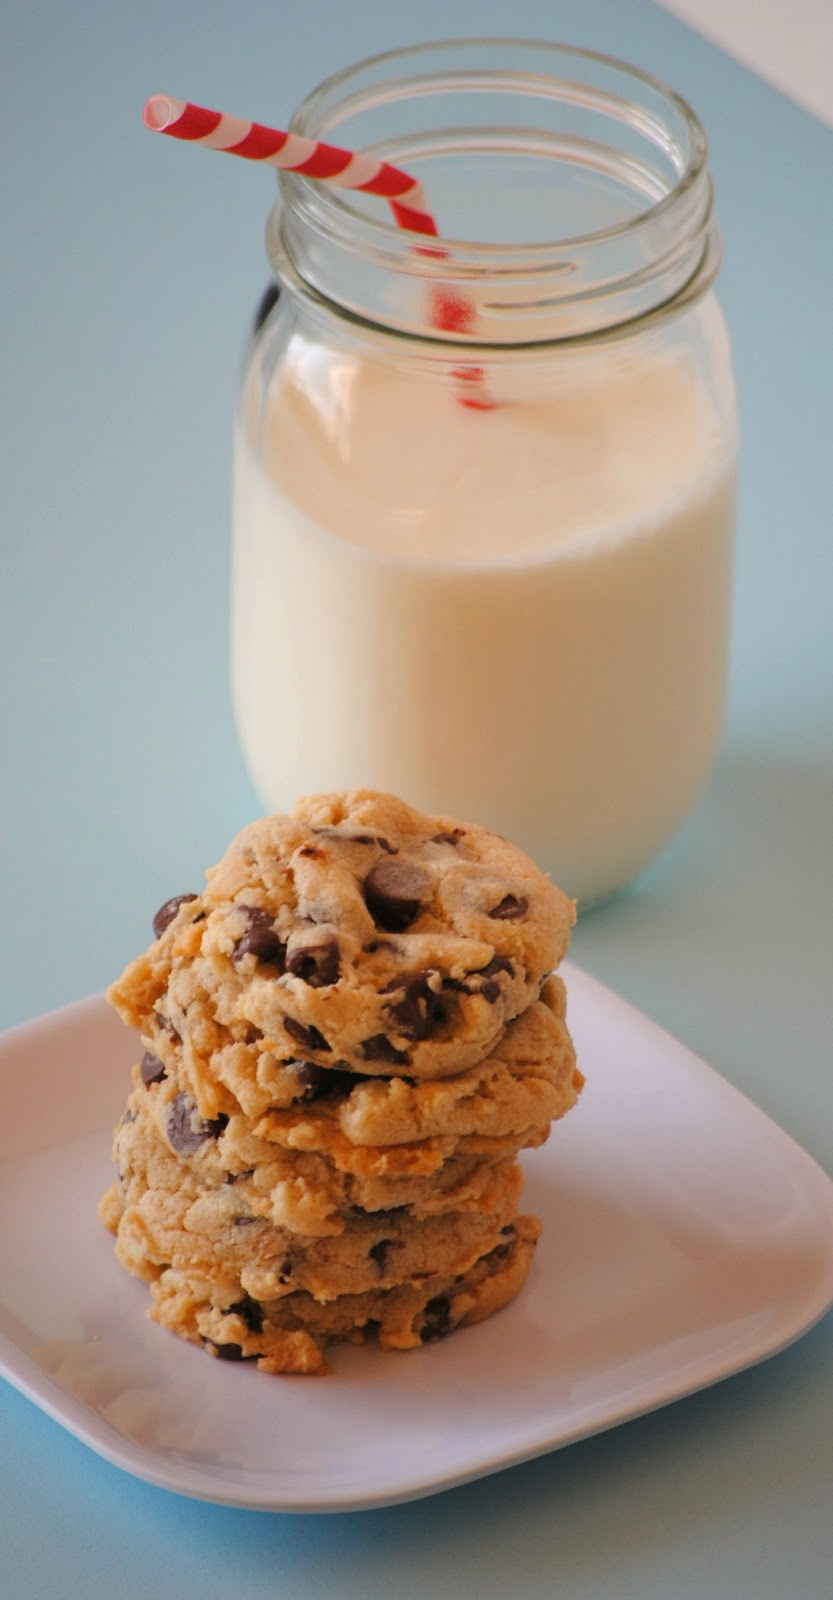 The Farm Girl Recipes: Cream Cheese Chocolate Chip Cookies